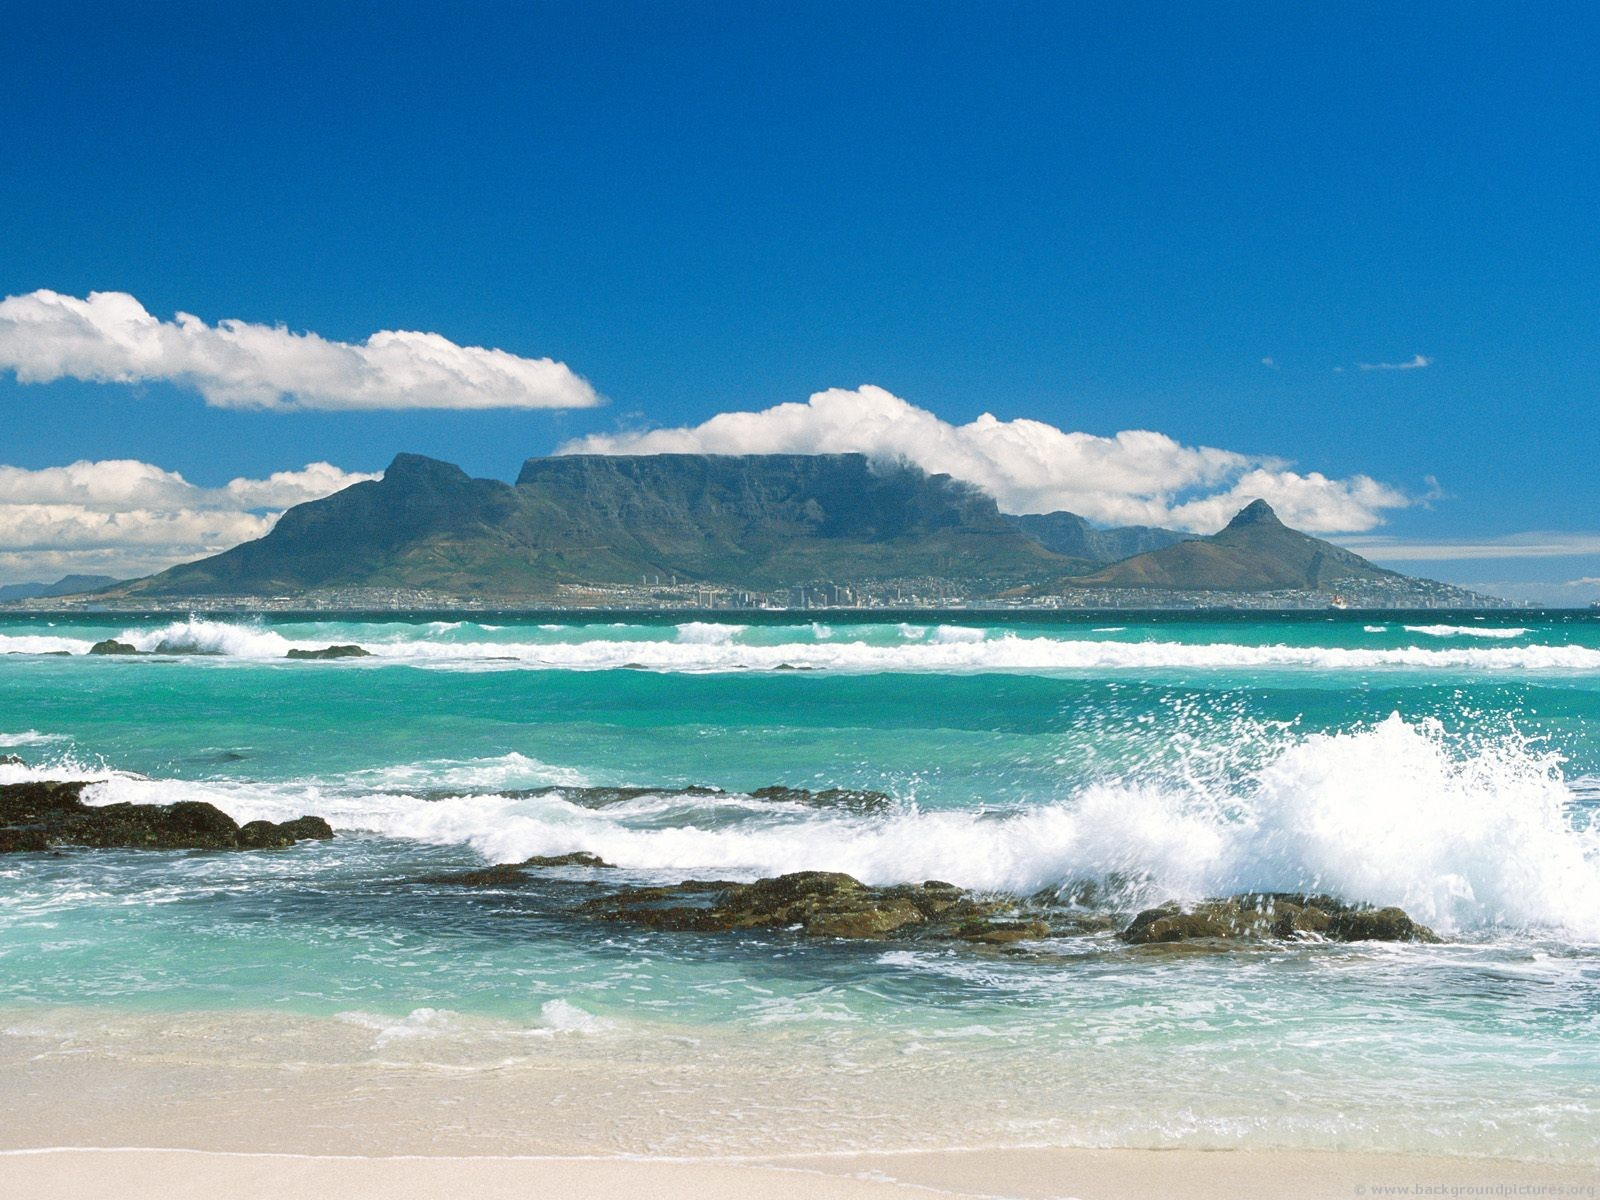 coastline-view-of-table-mountain-south-africa